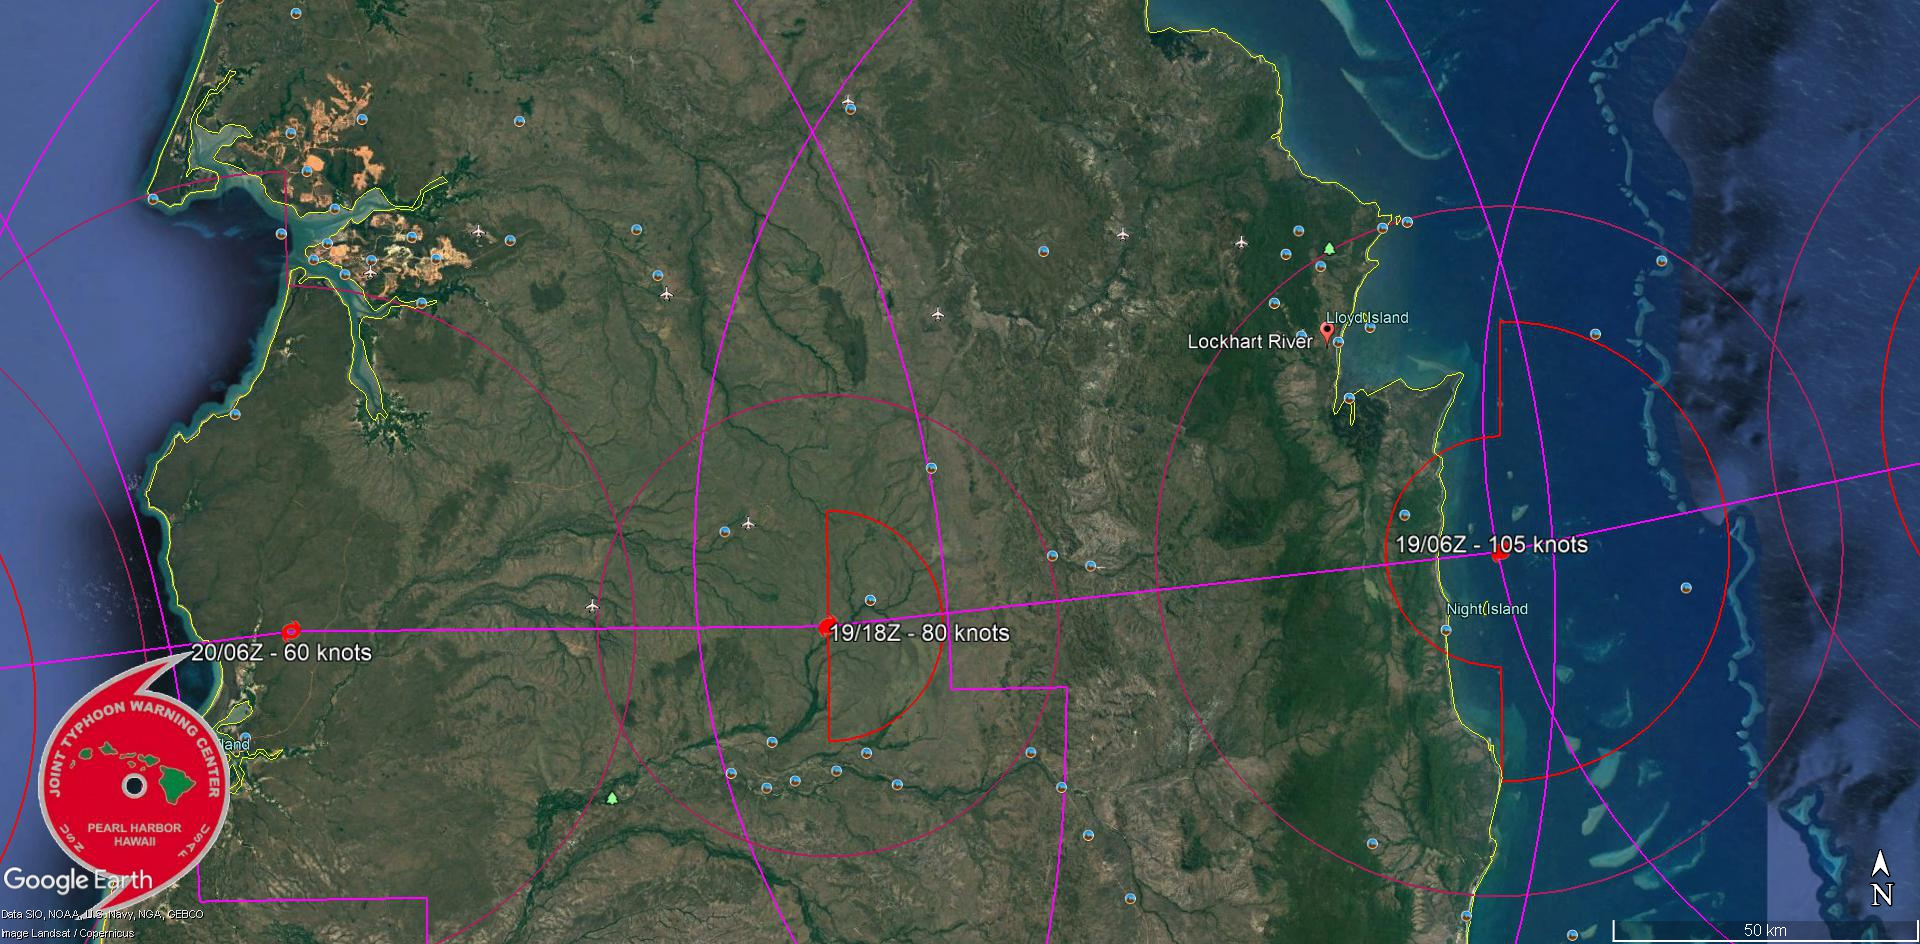 FORECAST LANDFALL AREA IN 12H LESS THAN 50KM SOUTH OF LOCKHART